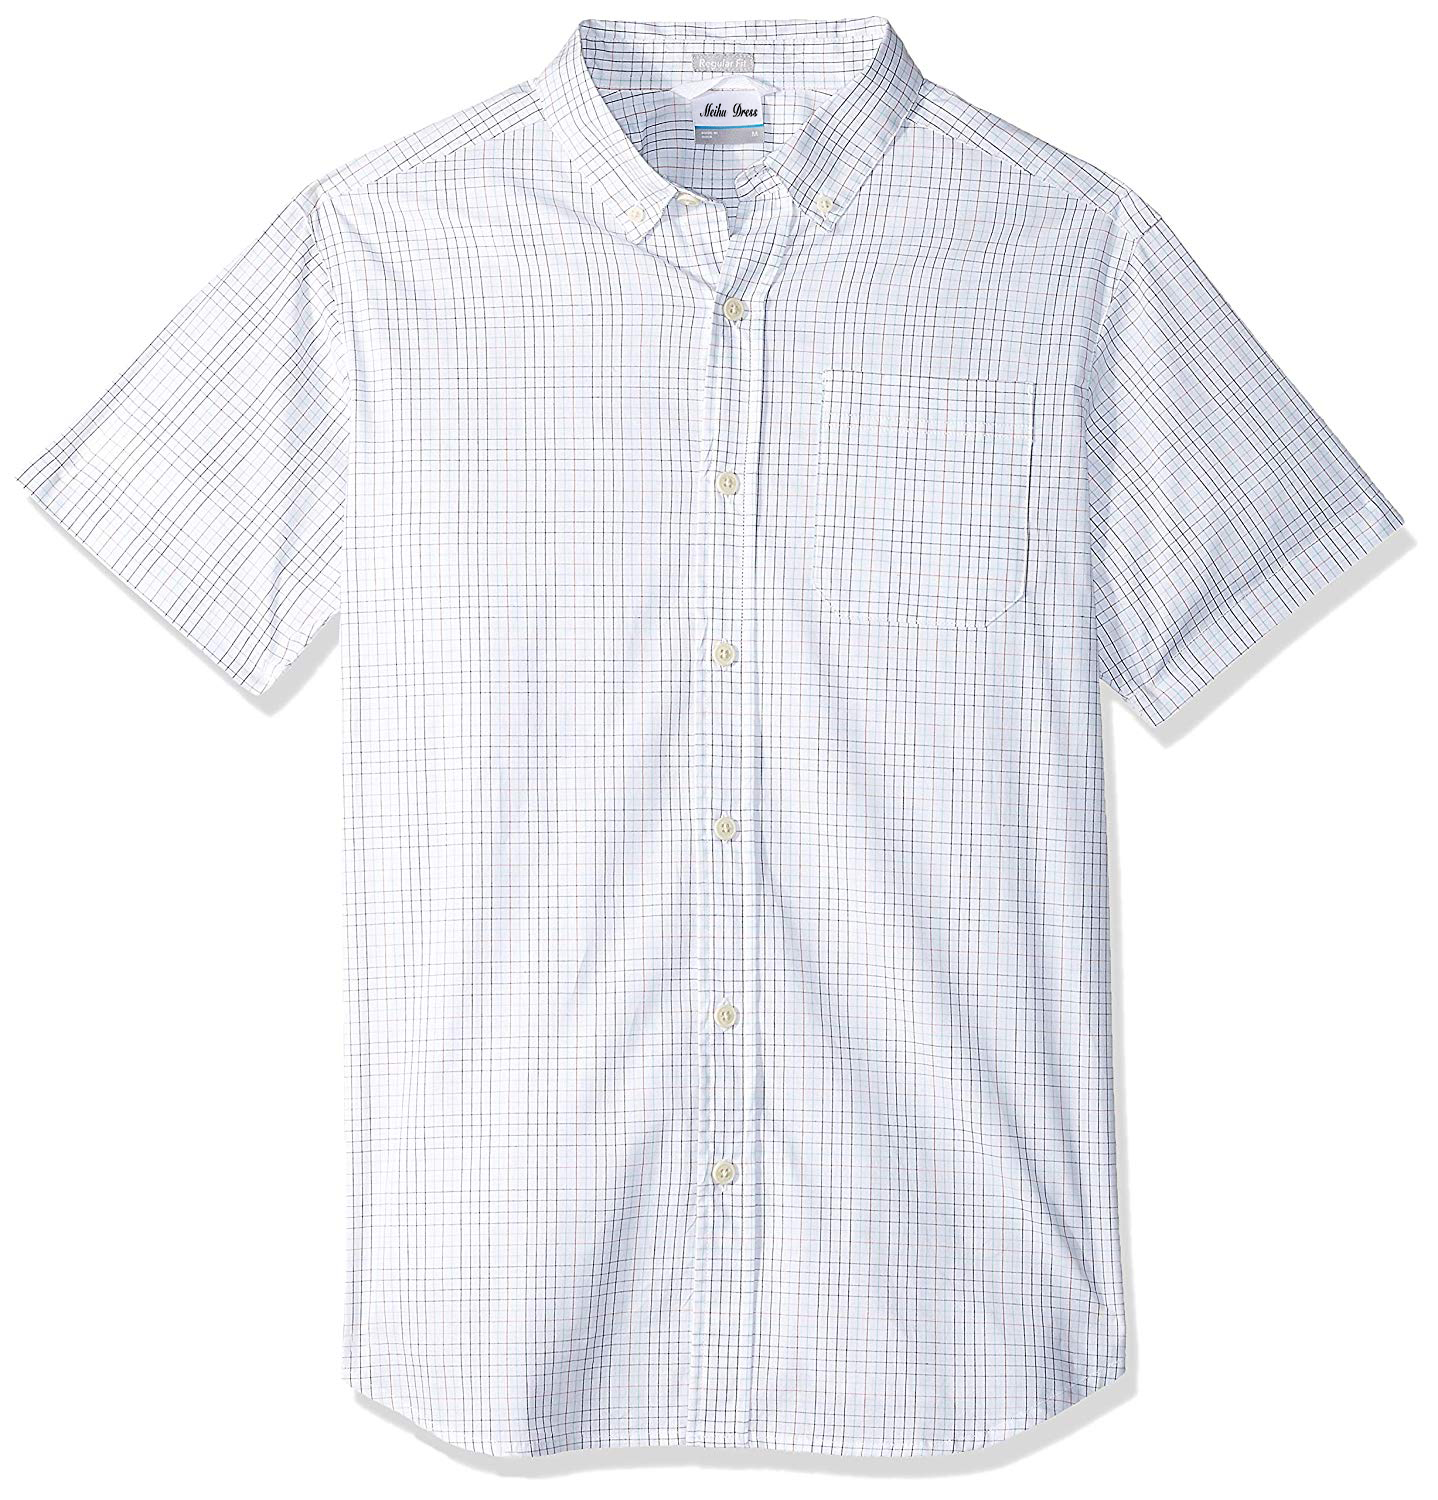 Summer Hot Selling New Style Men's Casual Plaid 100% Cotton Short Sleeve Shirts Customized